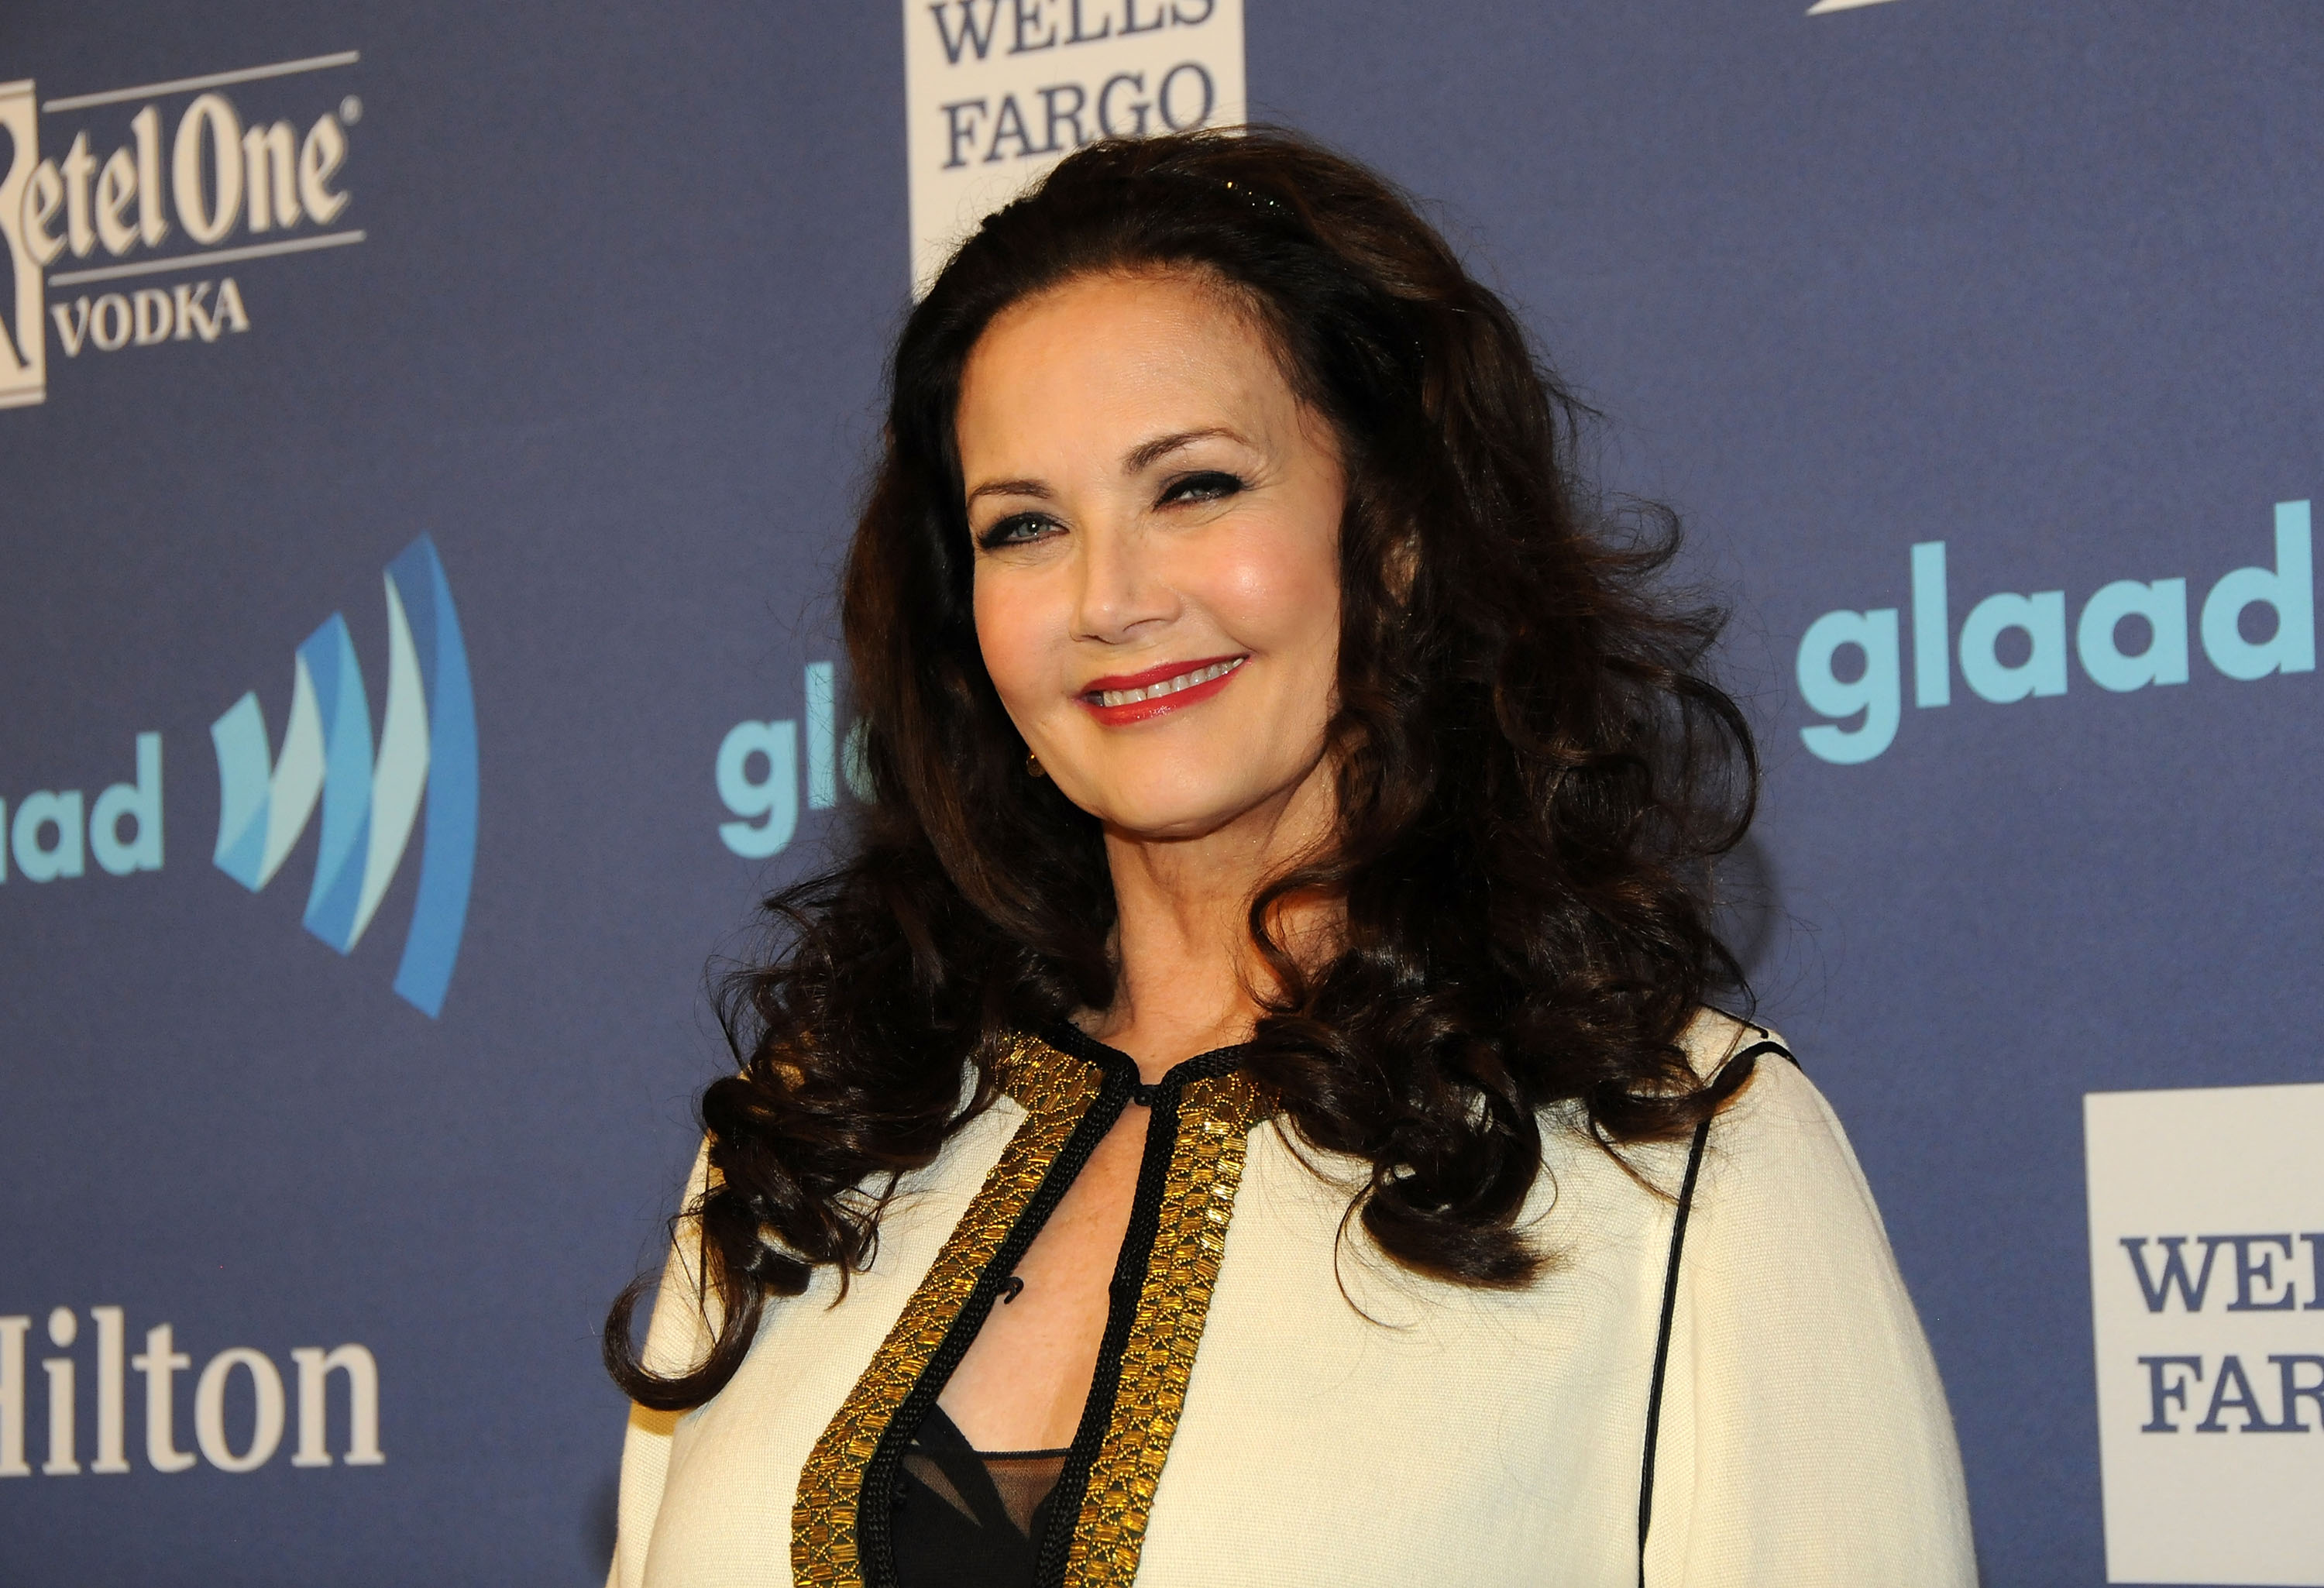 NEW YORK, NY - MAY 09: Lynda Carter attends the 26th Annual GLAAD Media Awards at The Waldorf Astoria on May 9, 2015 in New York City. (Photo by Desiree Navarro/WireImage)